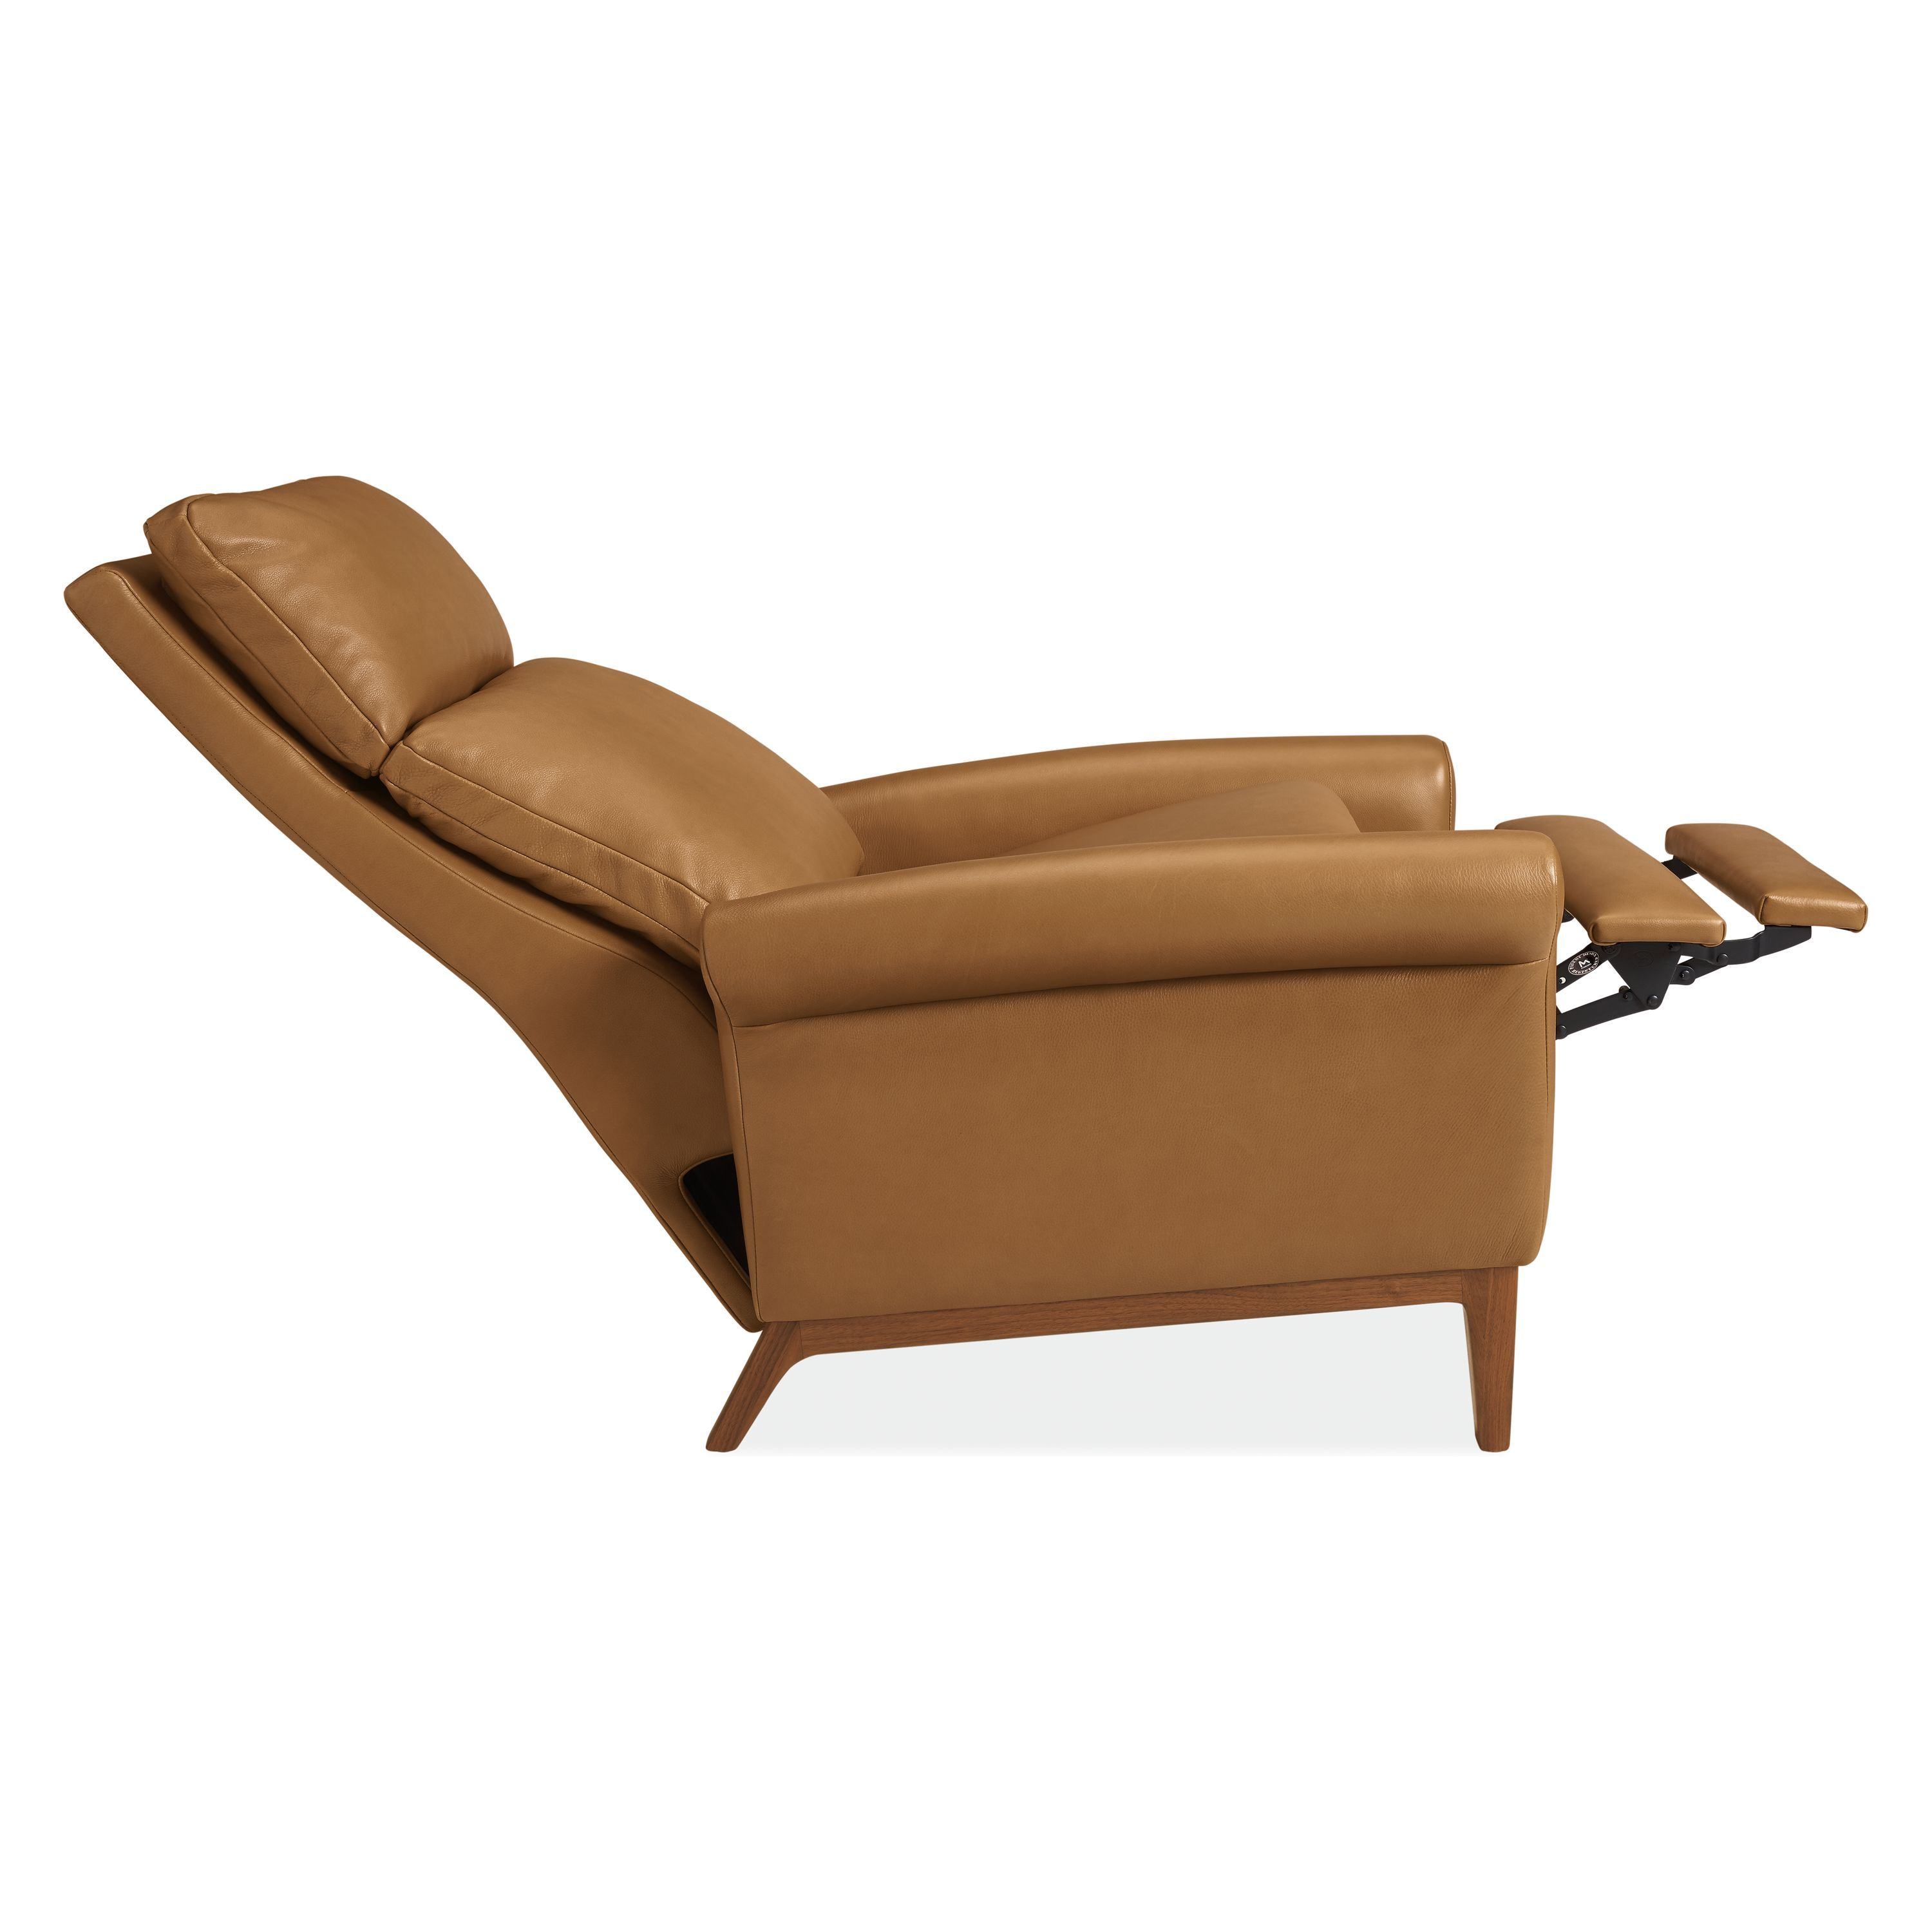 Wynton Leather Recliners Modern Recliners & Lounge